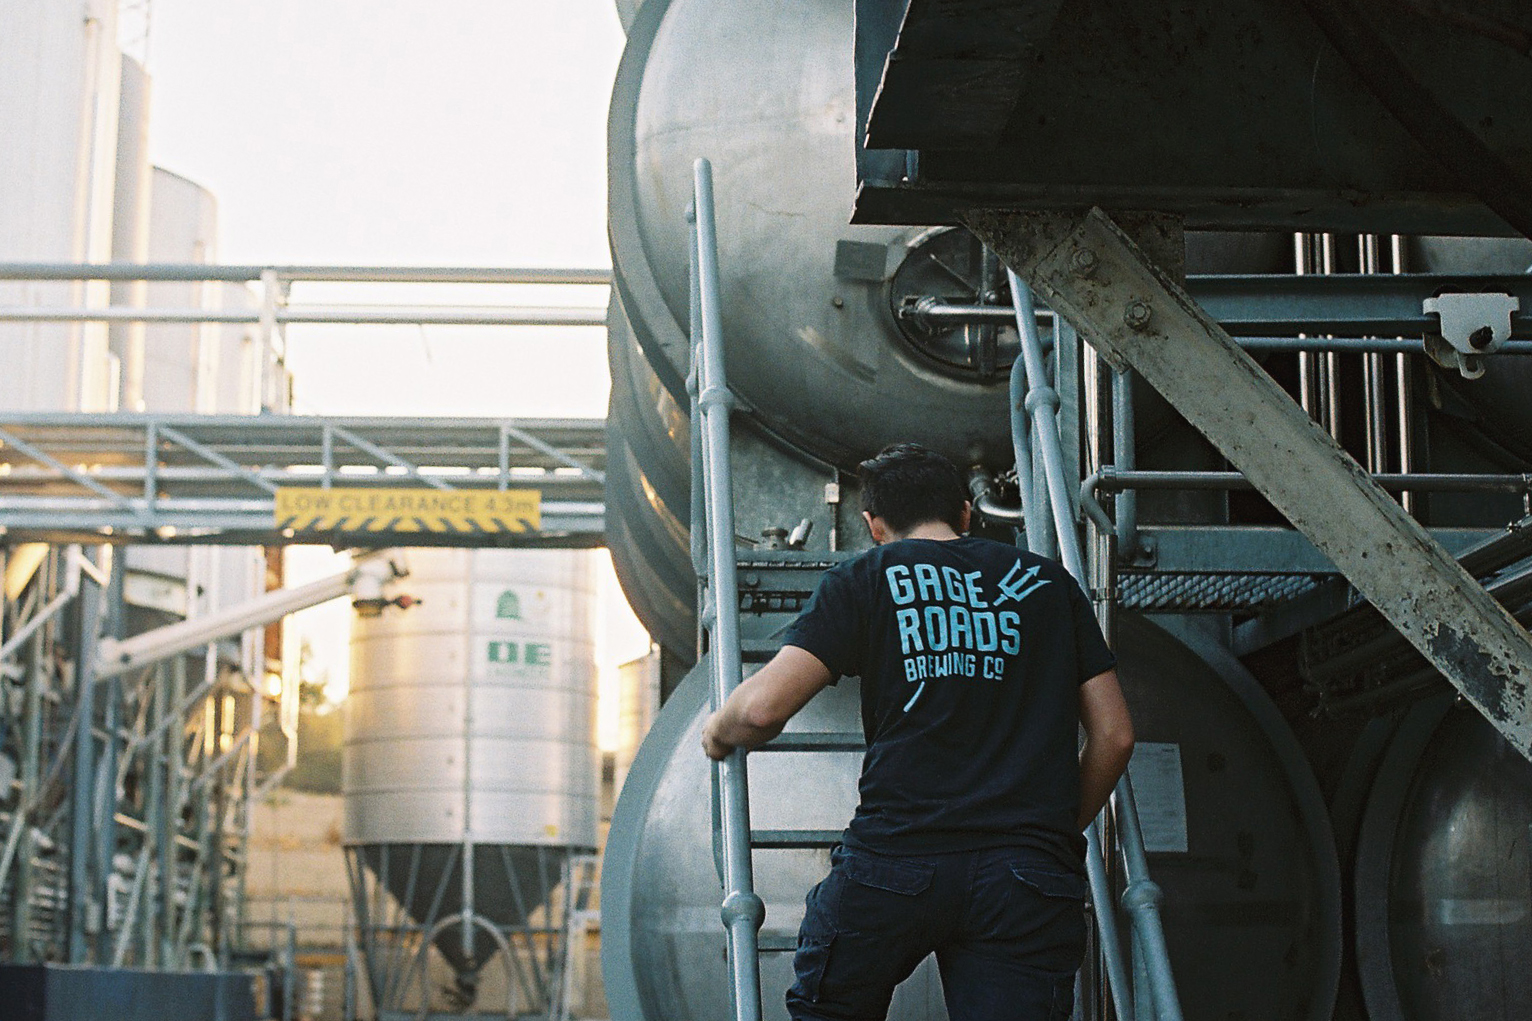 Gage Roads Brewery- Home Brewer to Head Brewer 2